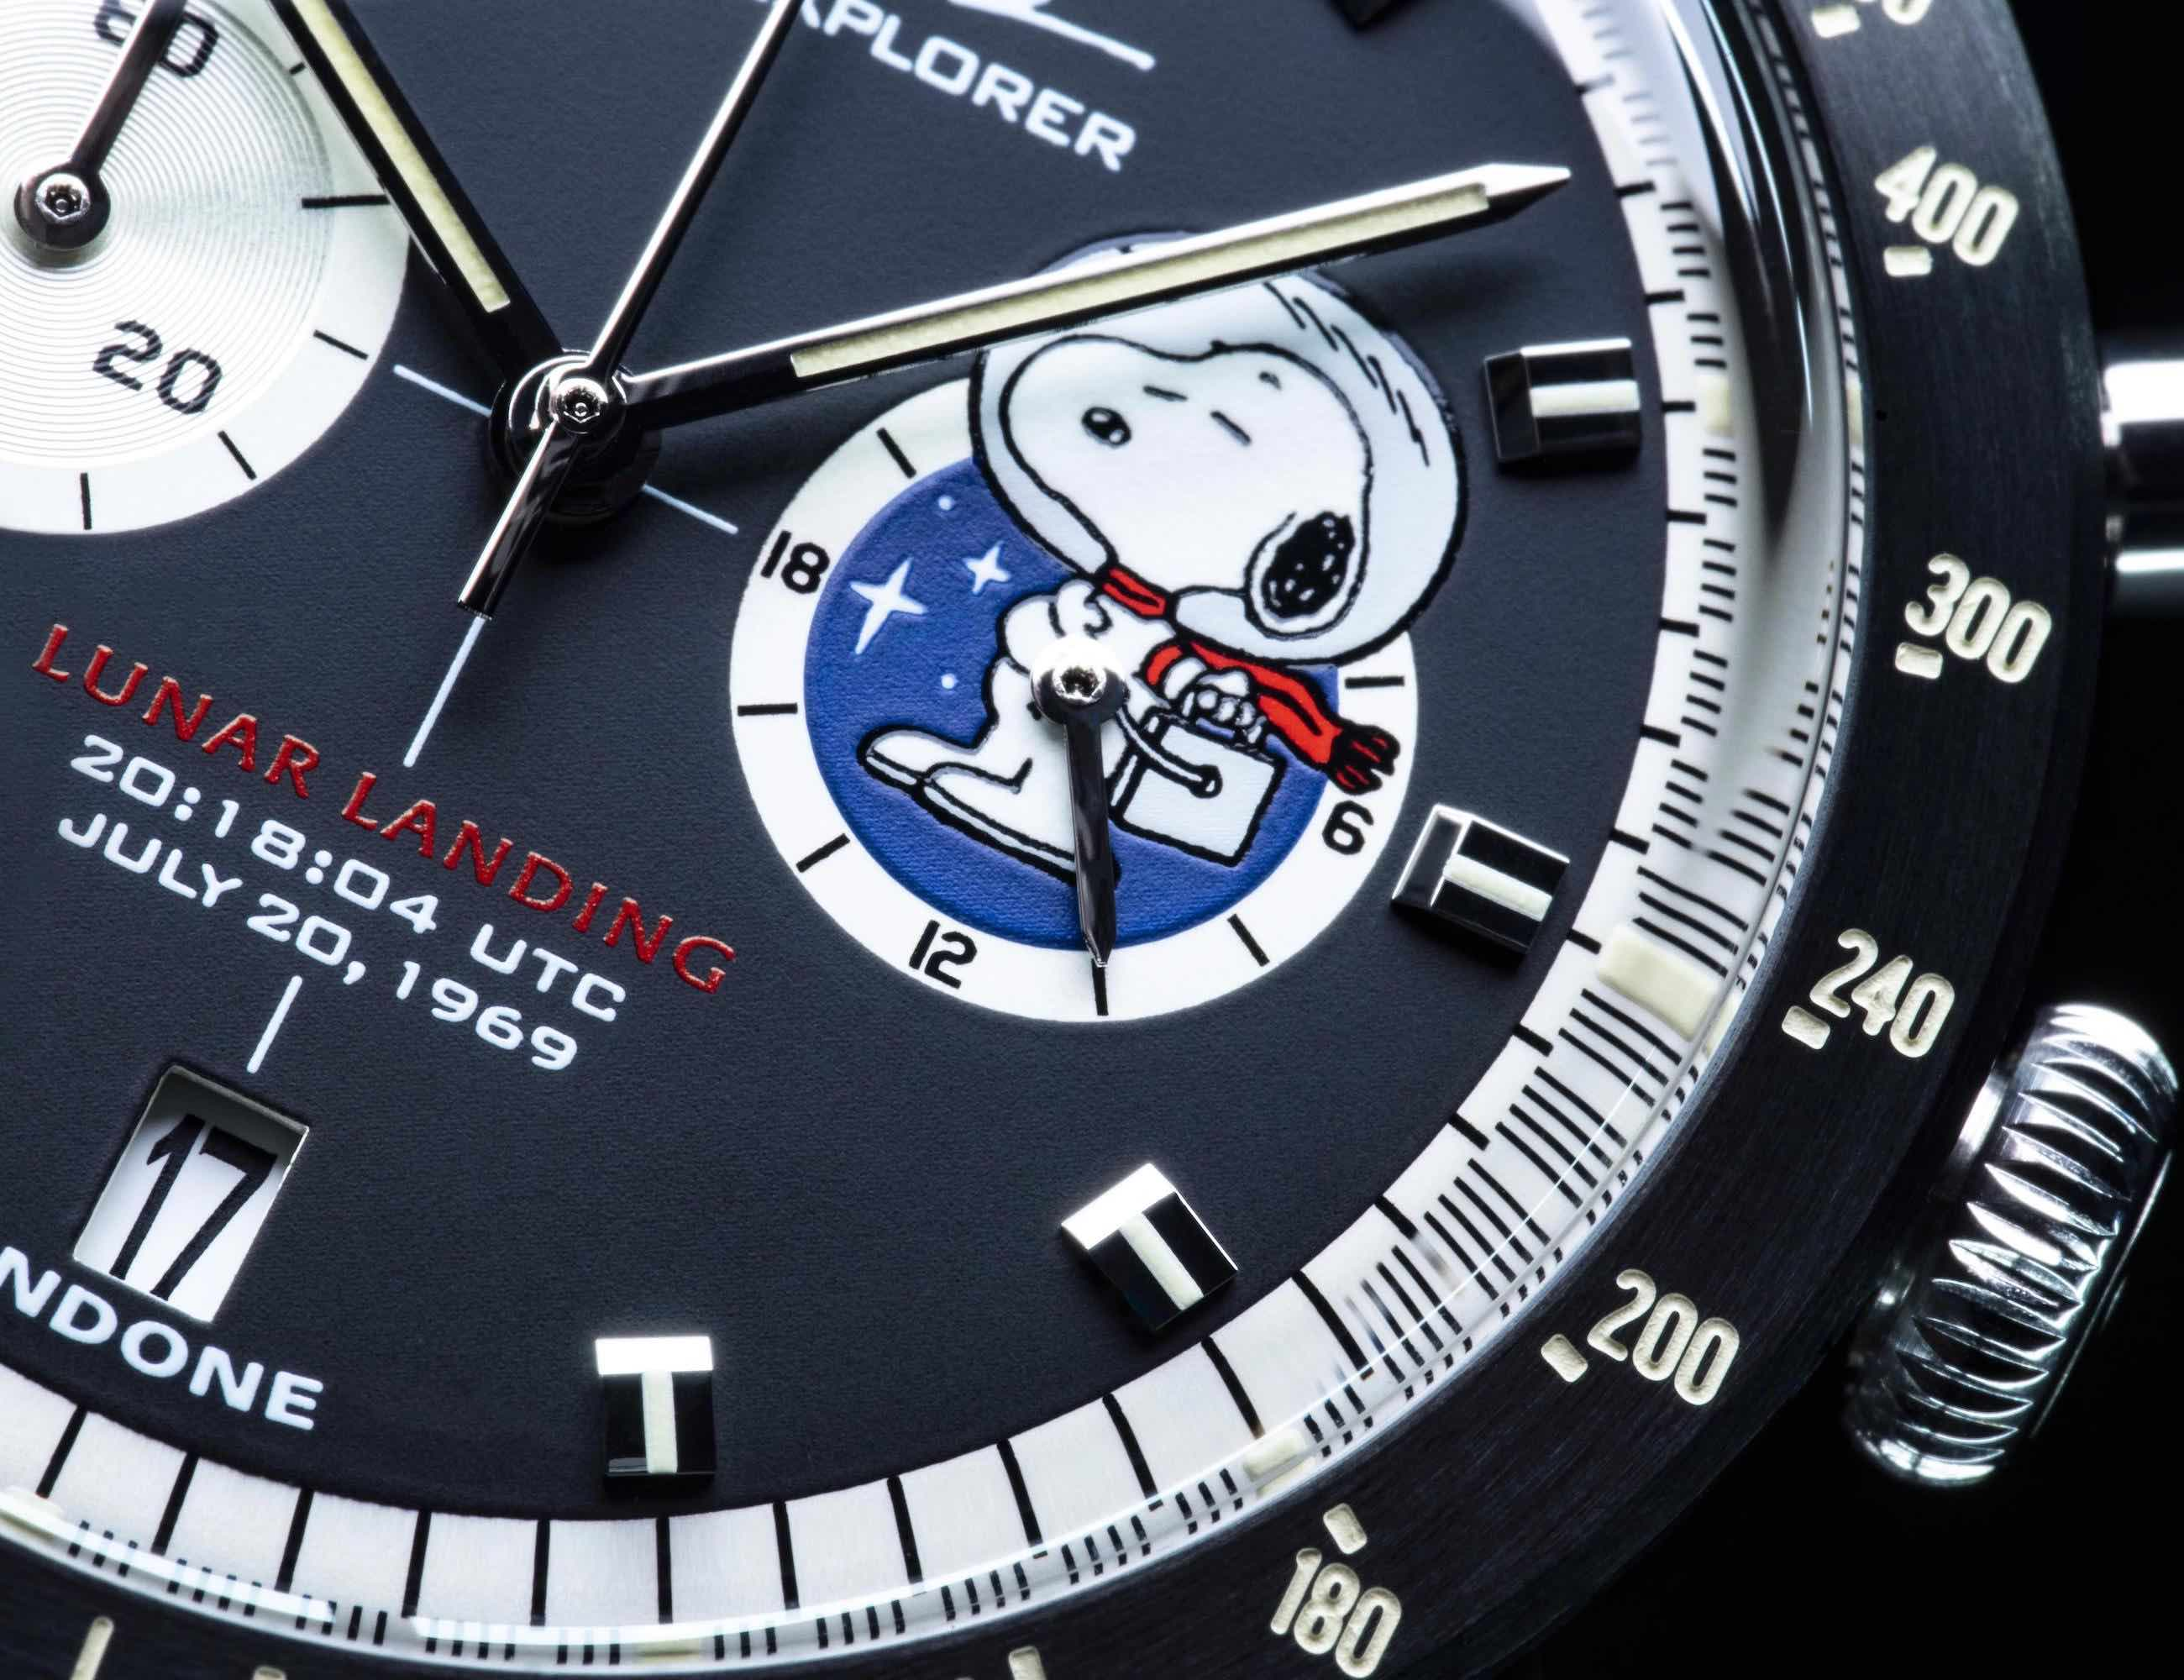 apollo 11 space mission watch - photo #14